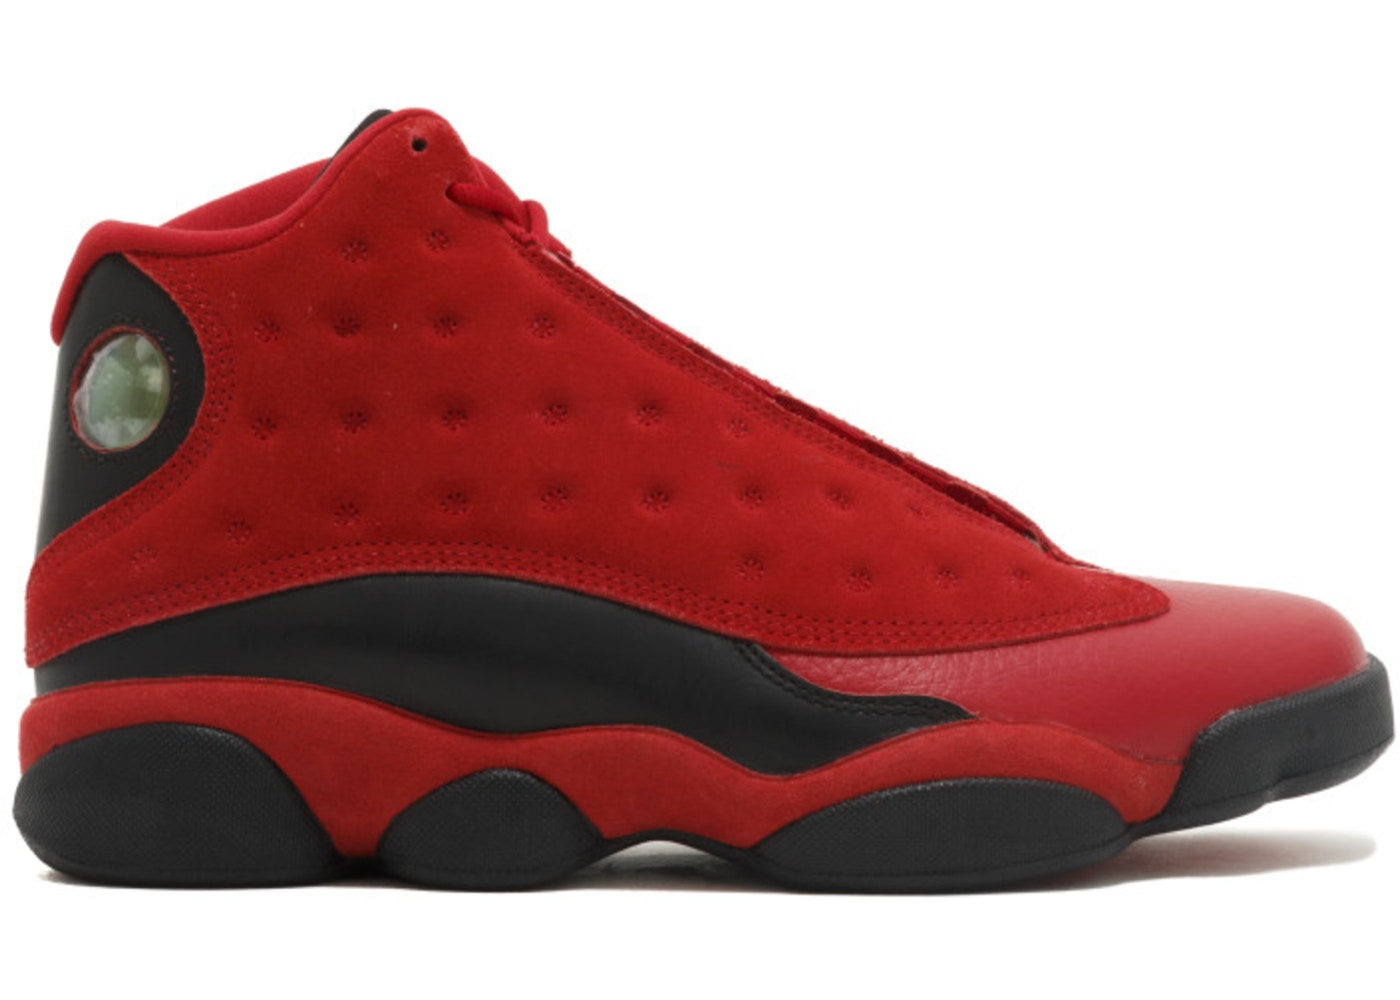 19df9e68848 Jordan 13 Retro What Is Love Pack - 888164-601